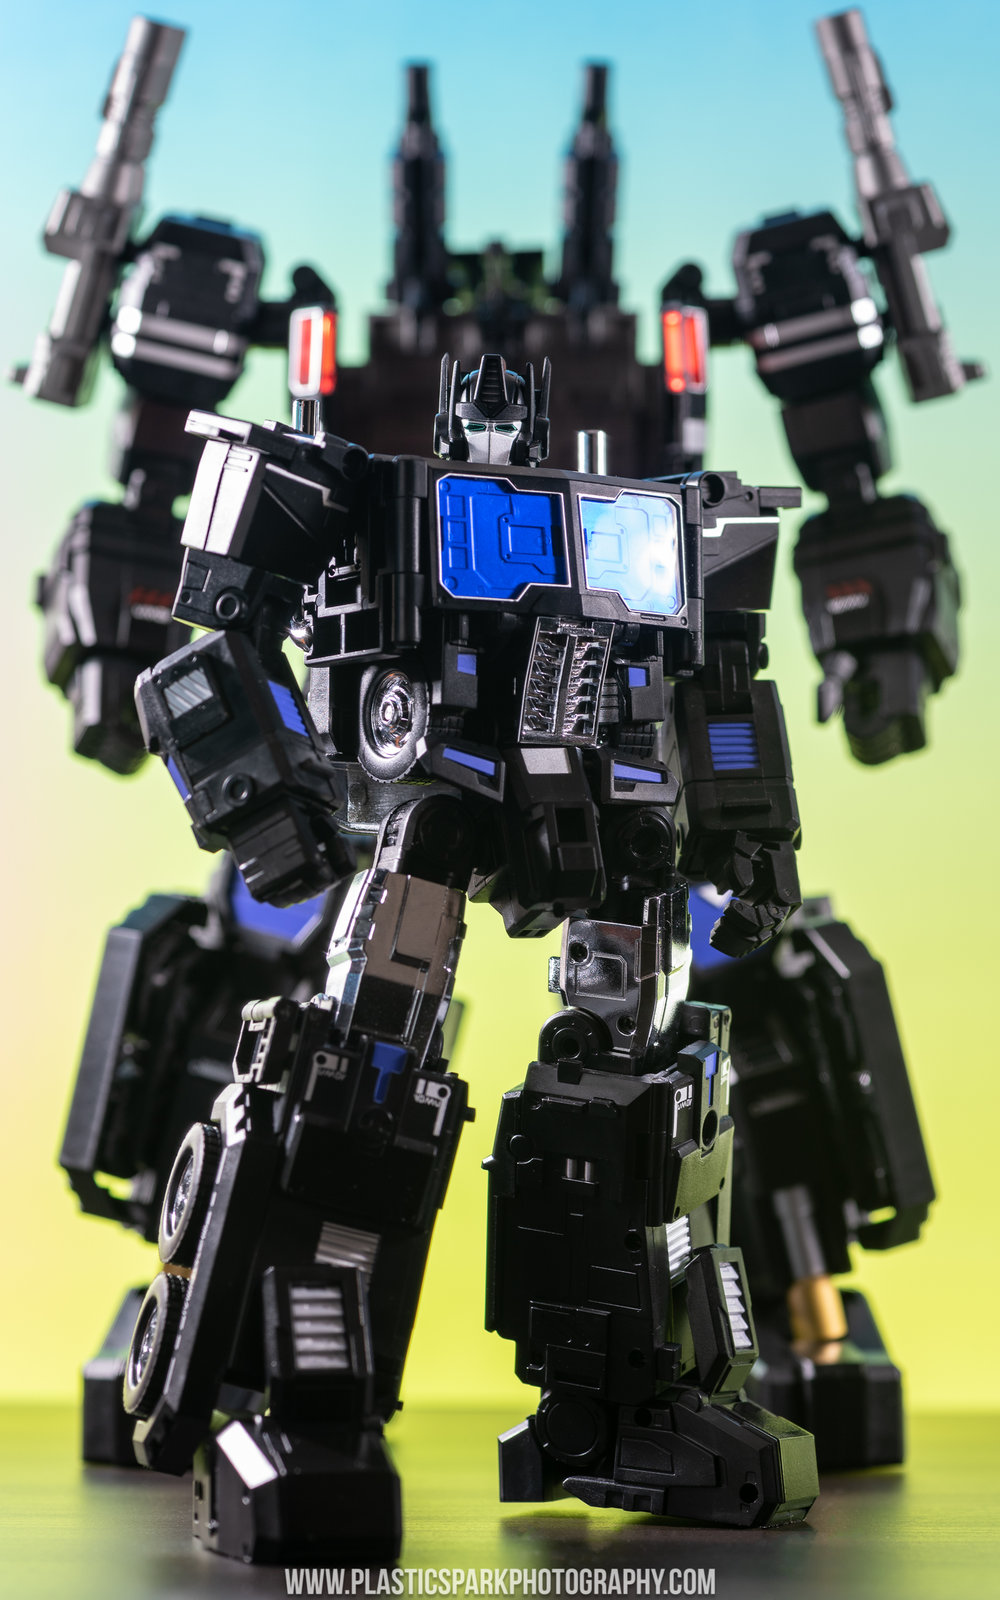 Fans Hobby MB-06A Black Power Baser Preview (5 of 10).jpg